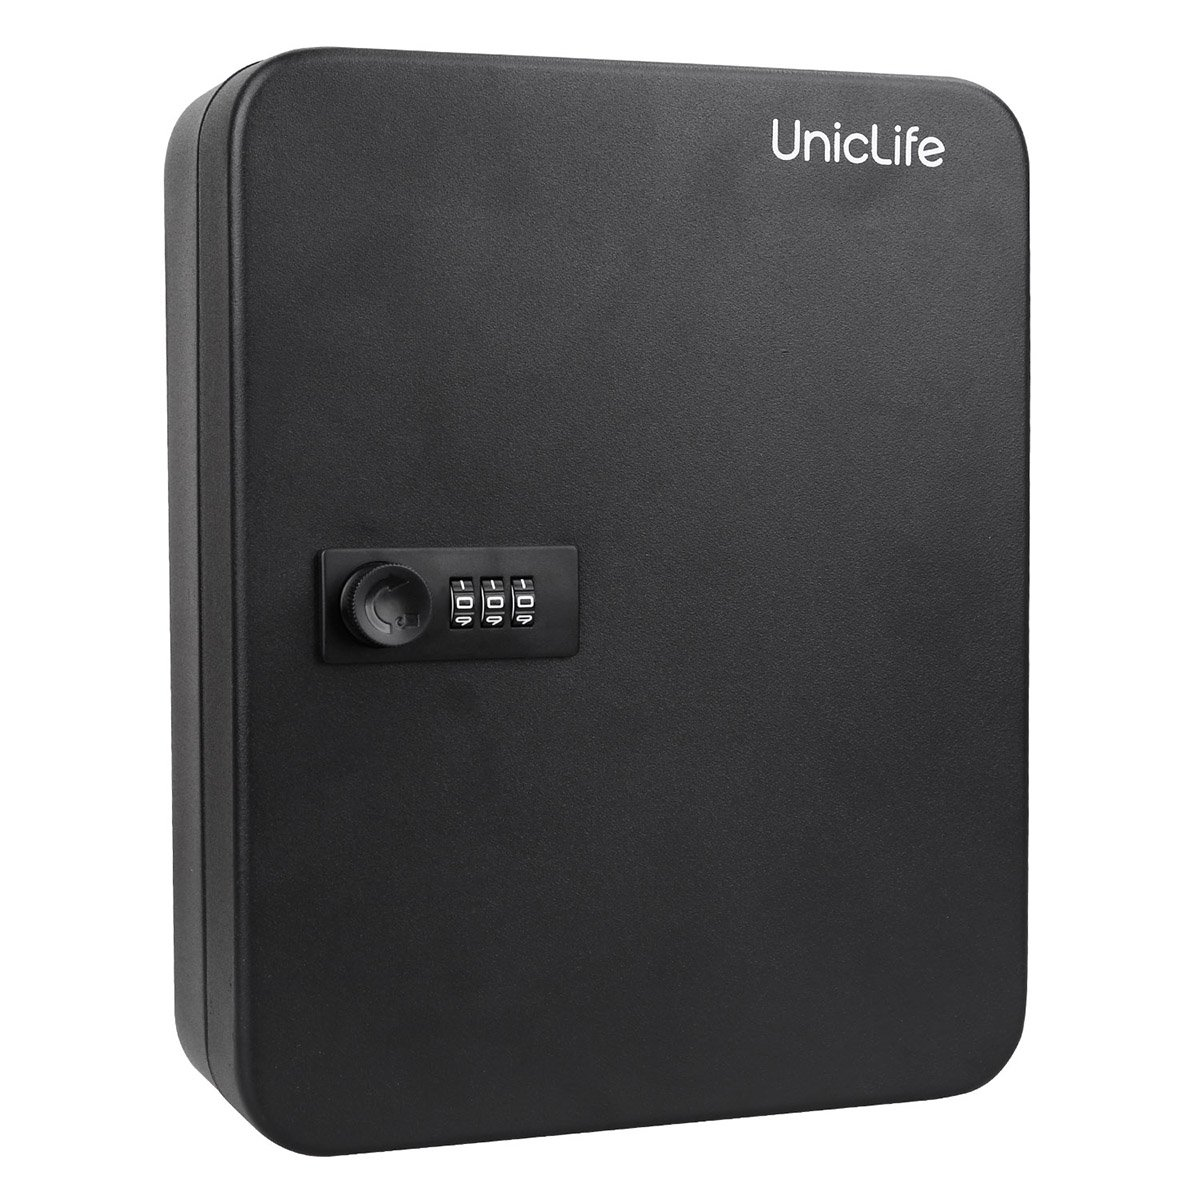 Uniclife 48 Key Cabinet Steel Security Lock Box with Combination Lock-Black